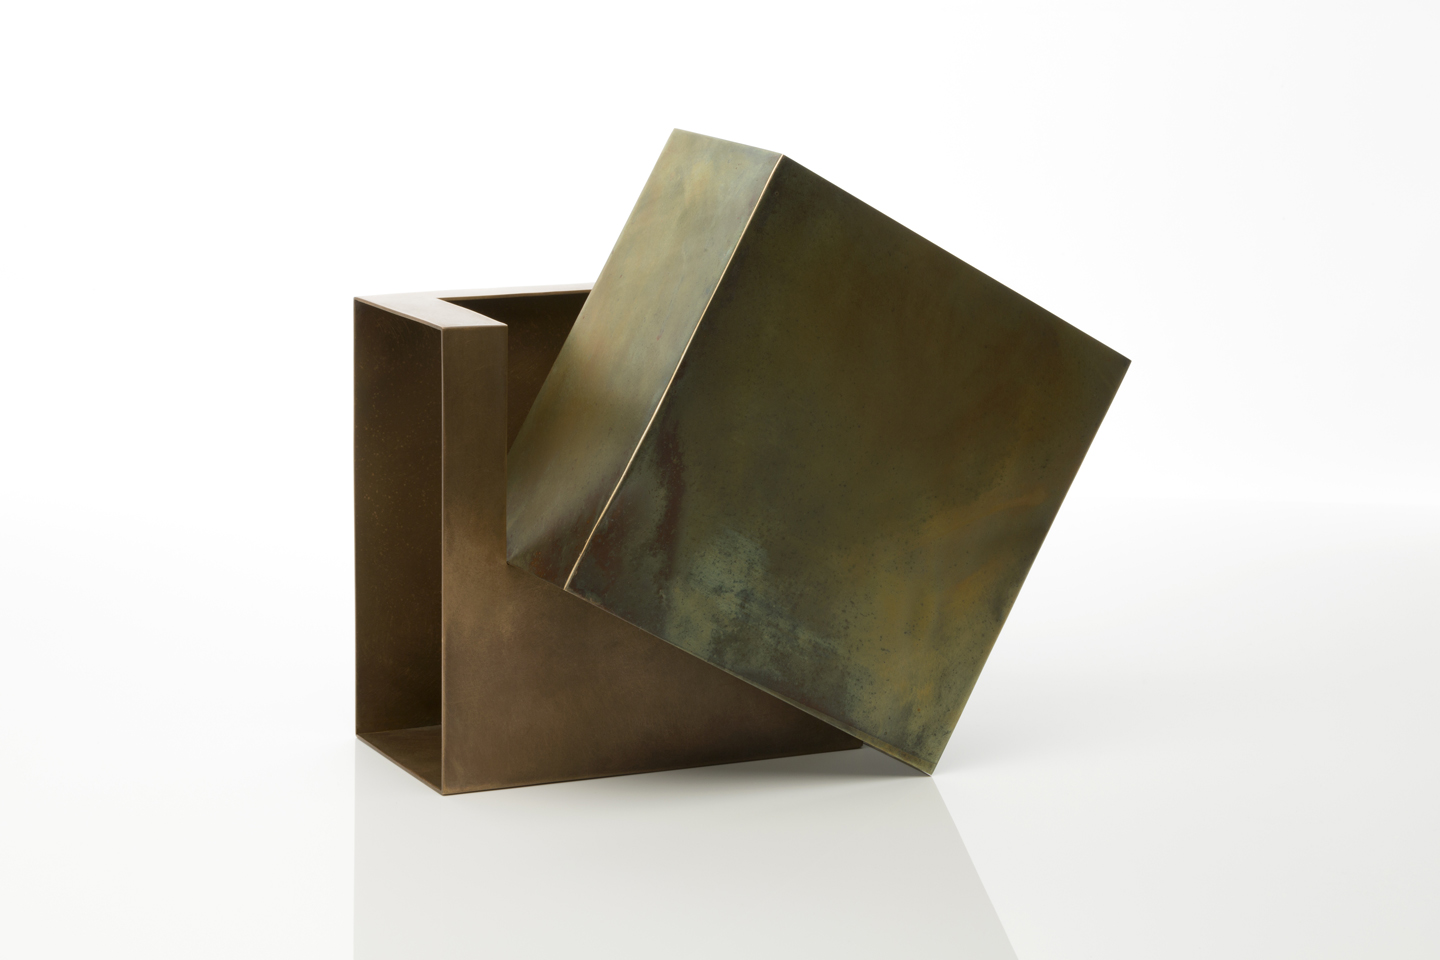 Juliette_Bigley_Squares_pair_Mixed_metals_2018_1.JPG